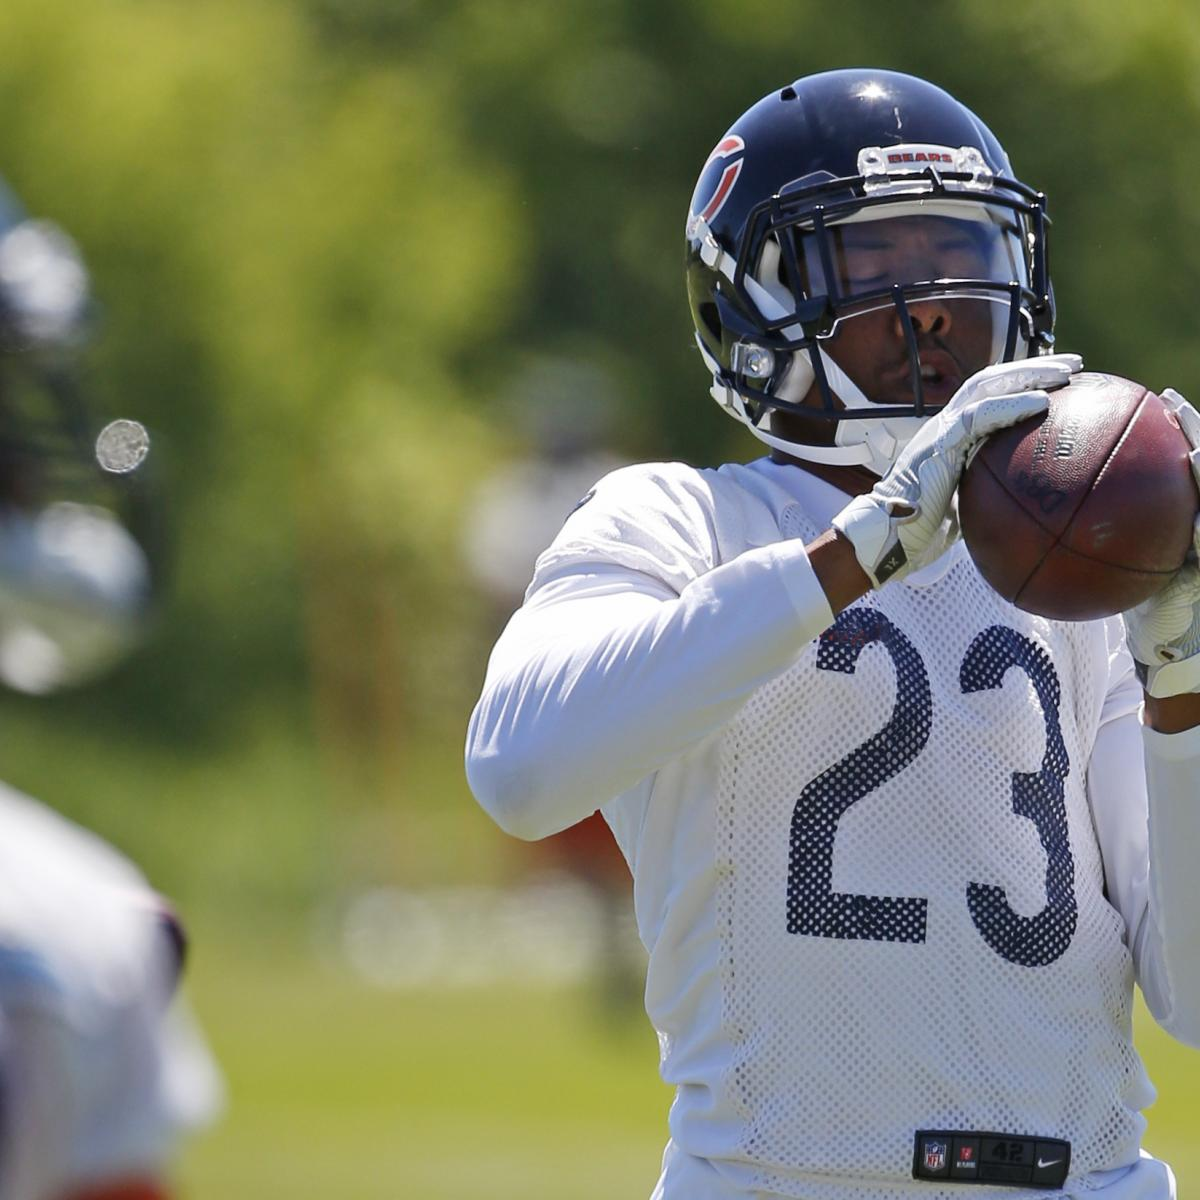 Chicago Bears Roster: 8 Players On Chicago Bears' 2017 Roster Bubble